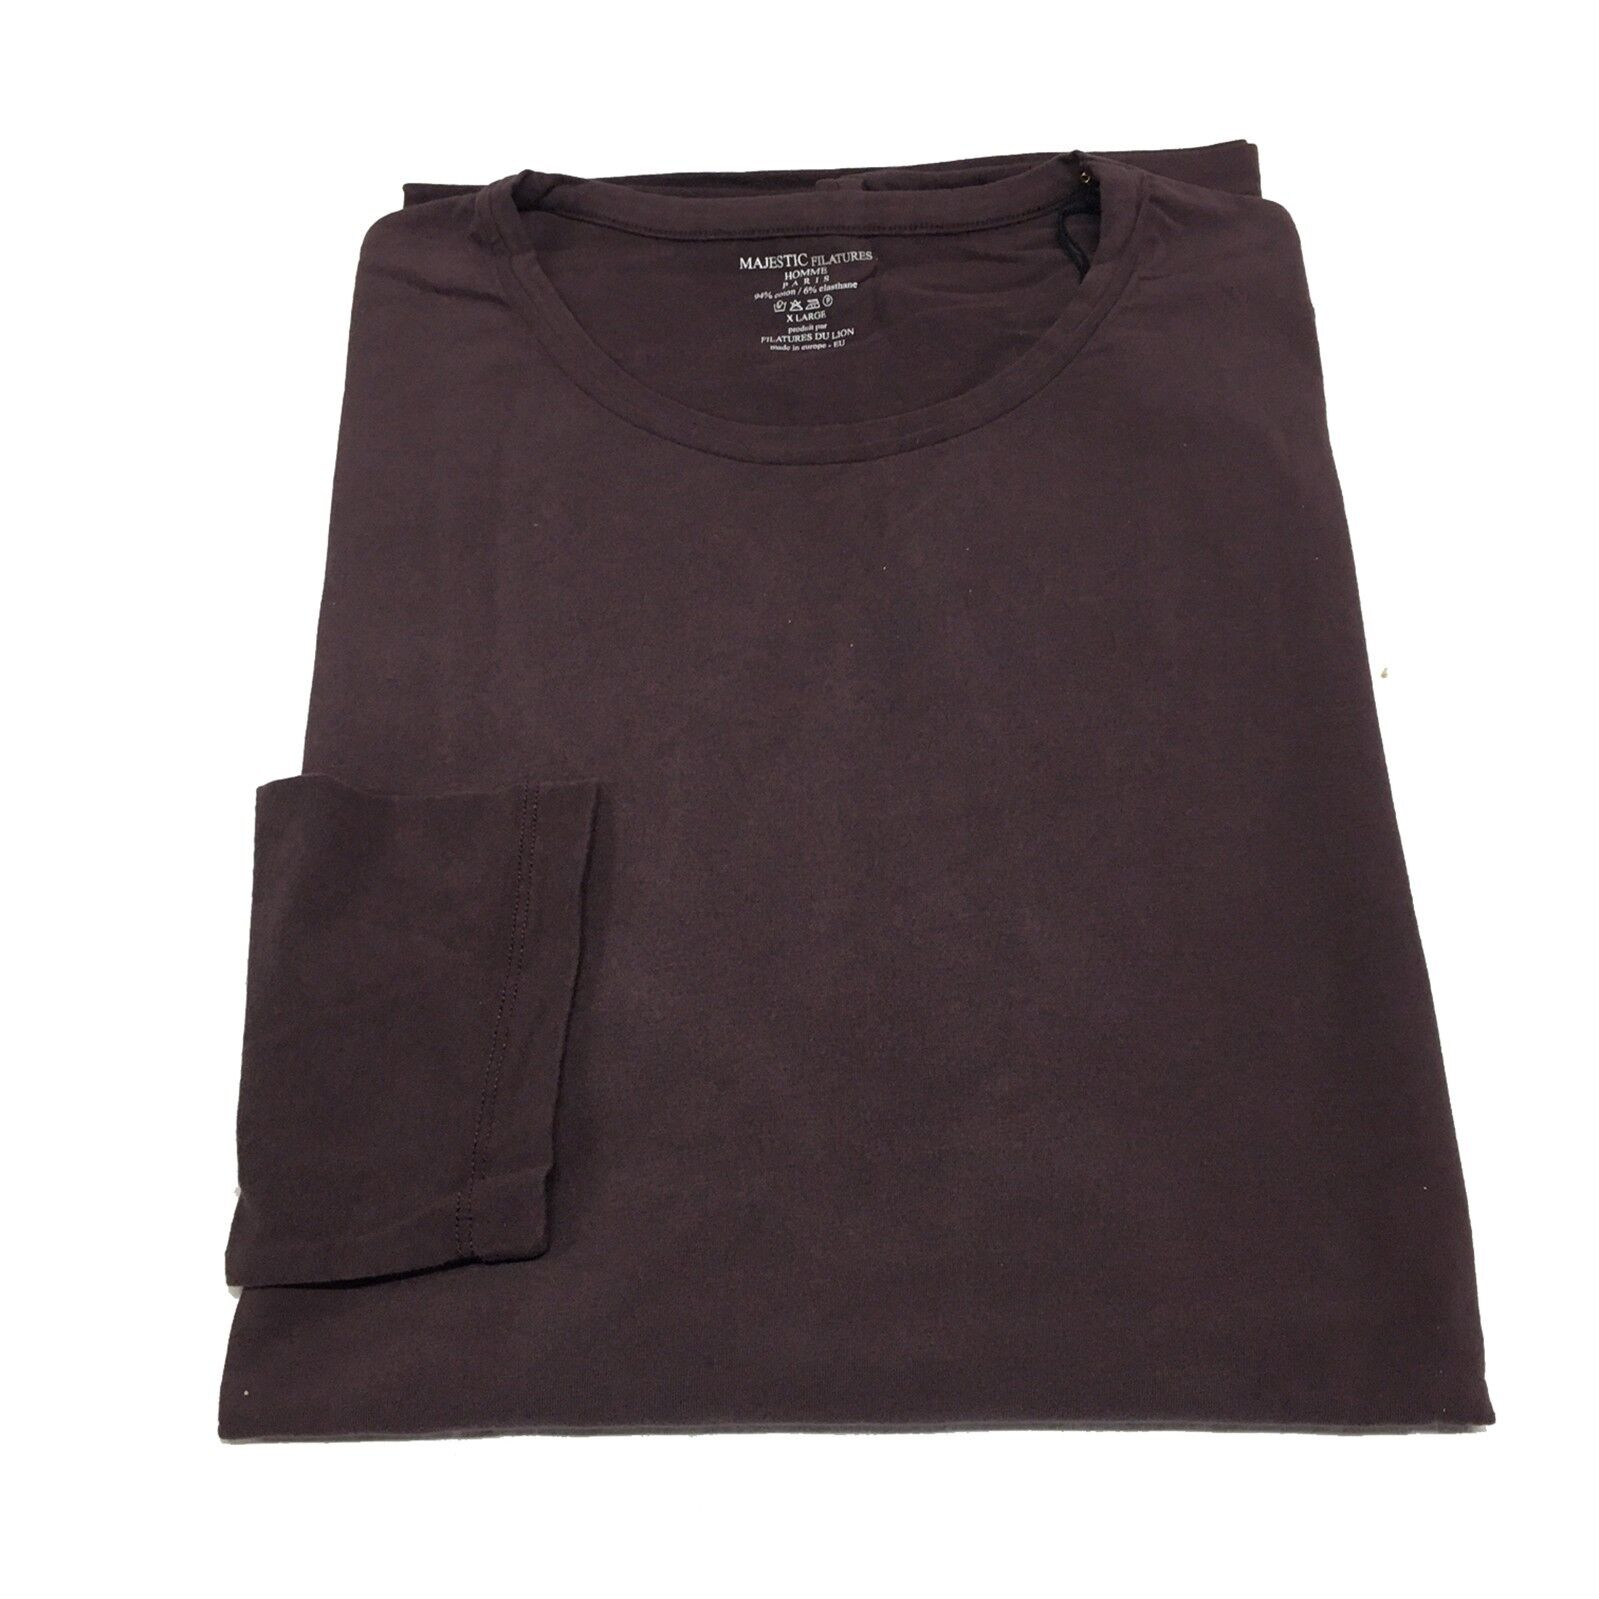 MAJESTIC HOMME t-shirt men's long sleeve burgundy MADE IN UE